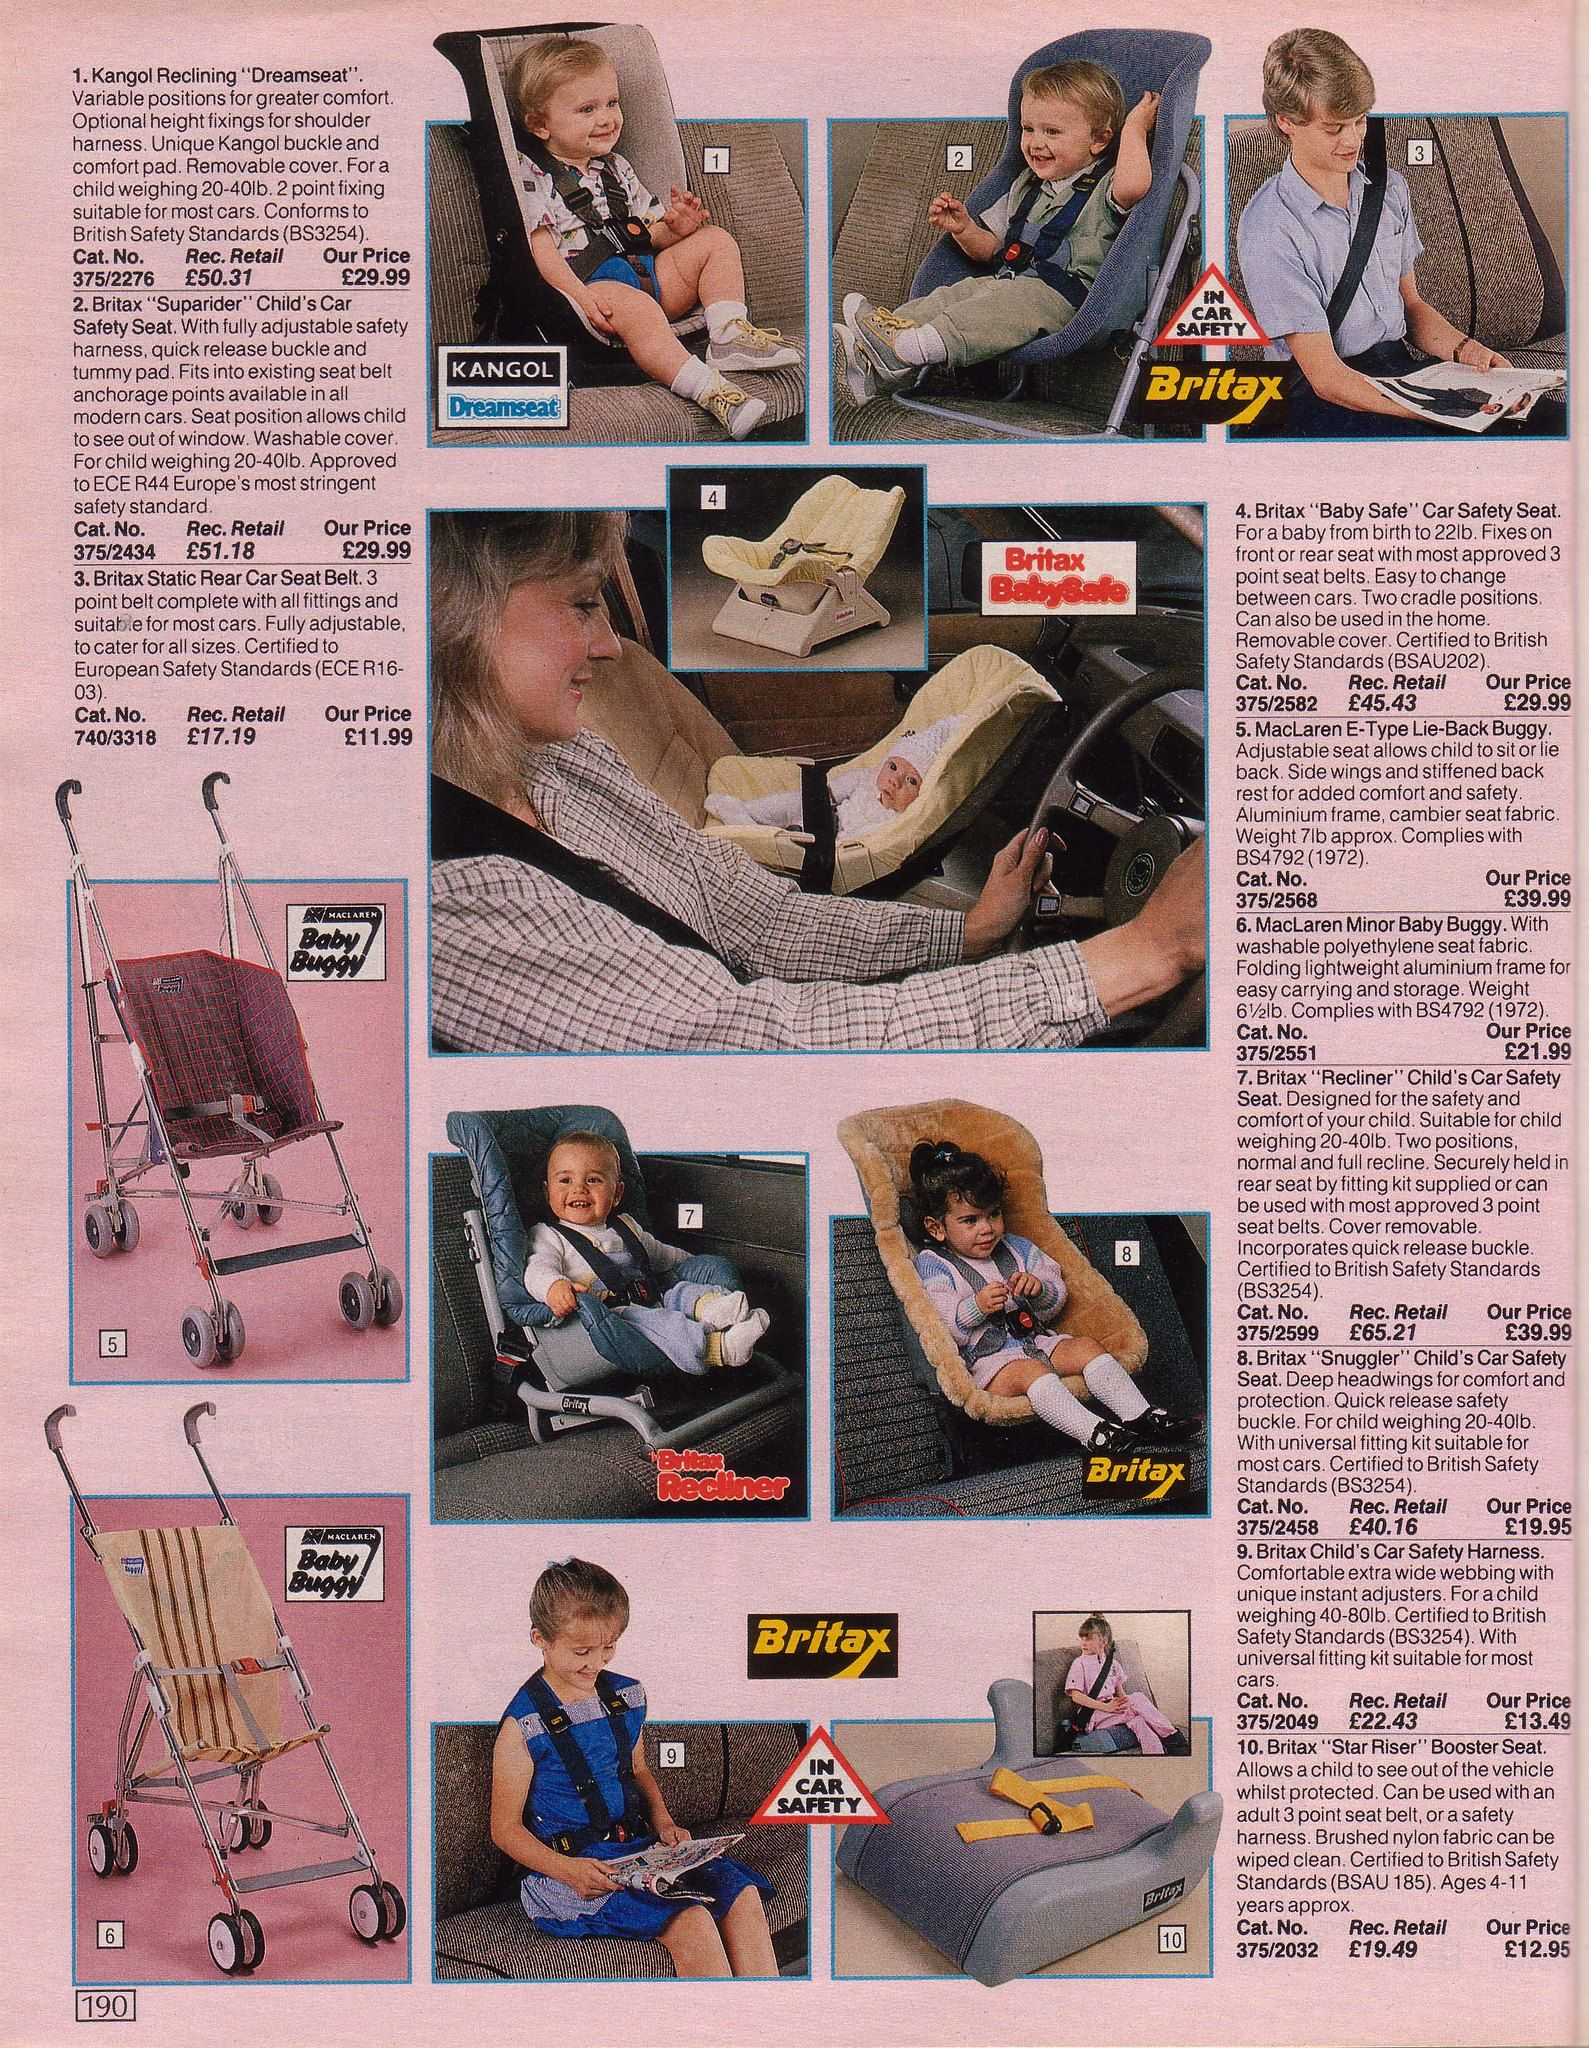 Pin on Baby transport